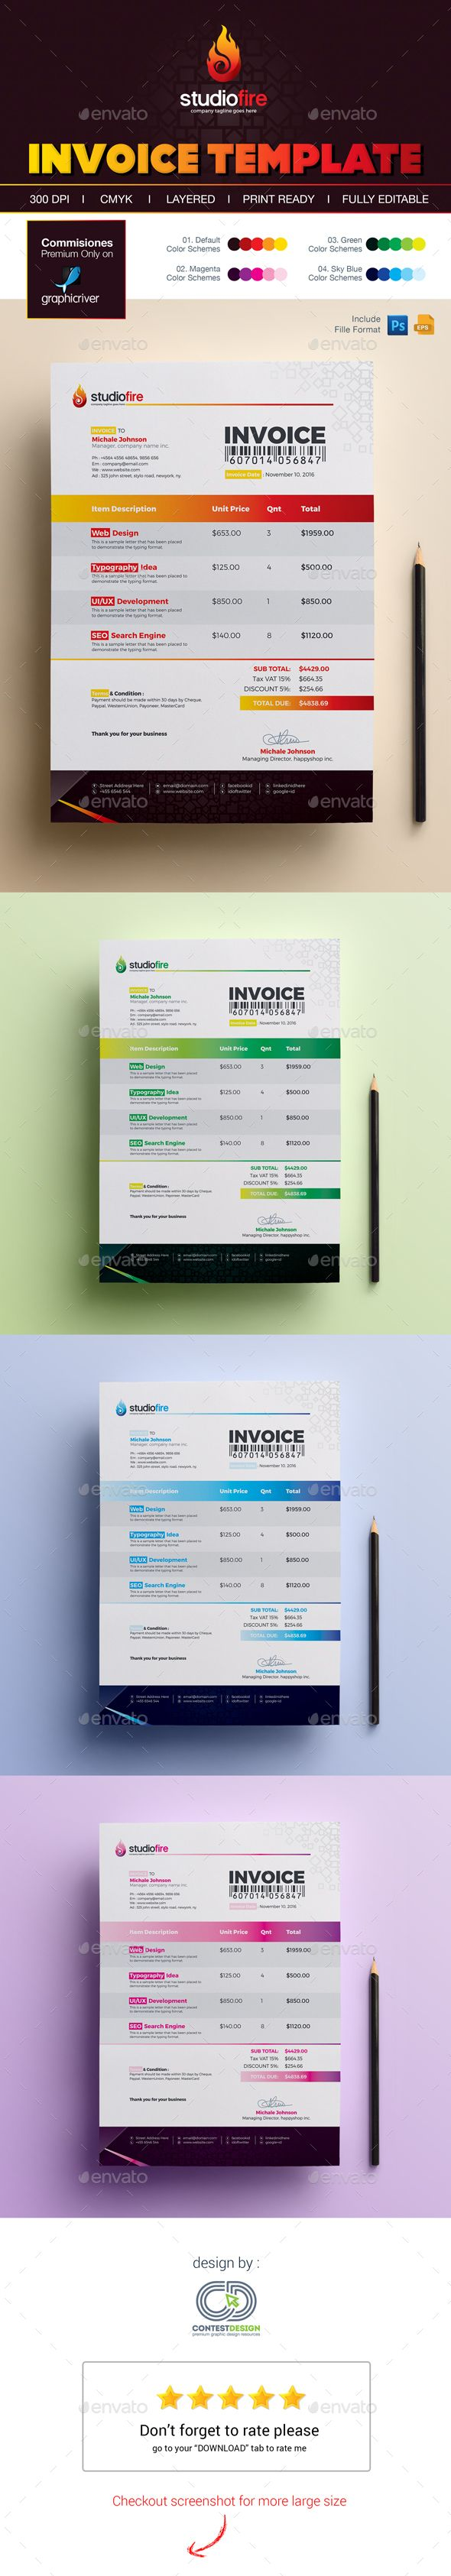 Best Invoice Templates Images On Pinterest Invoice Template - Proposal invoice template